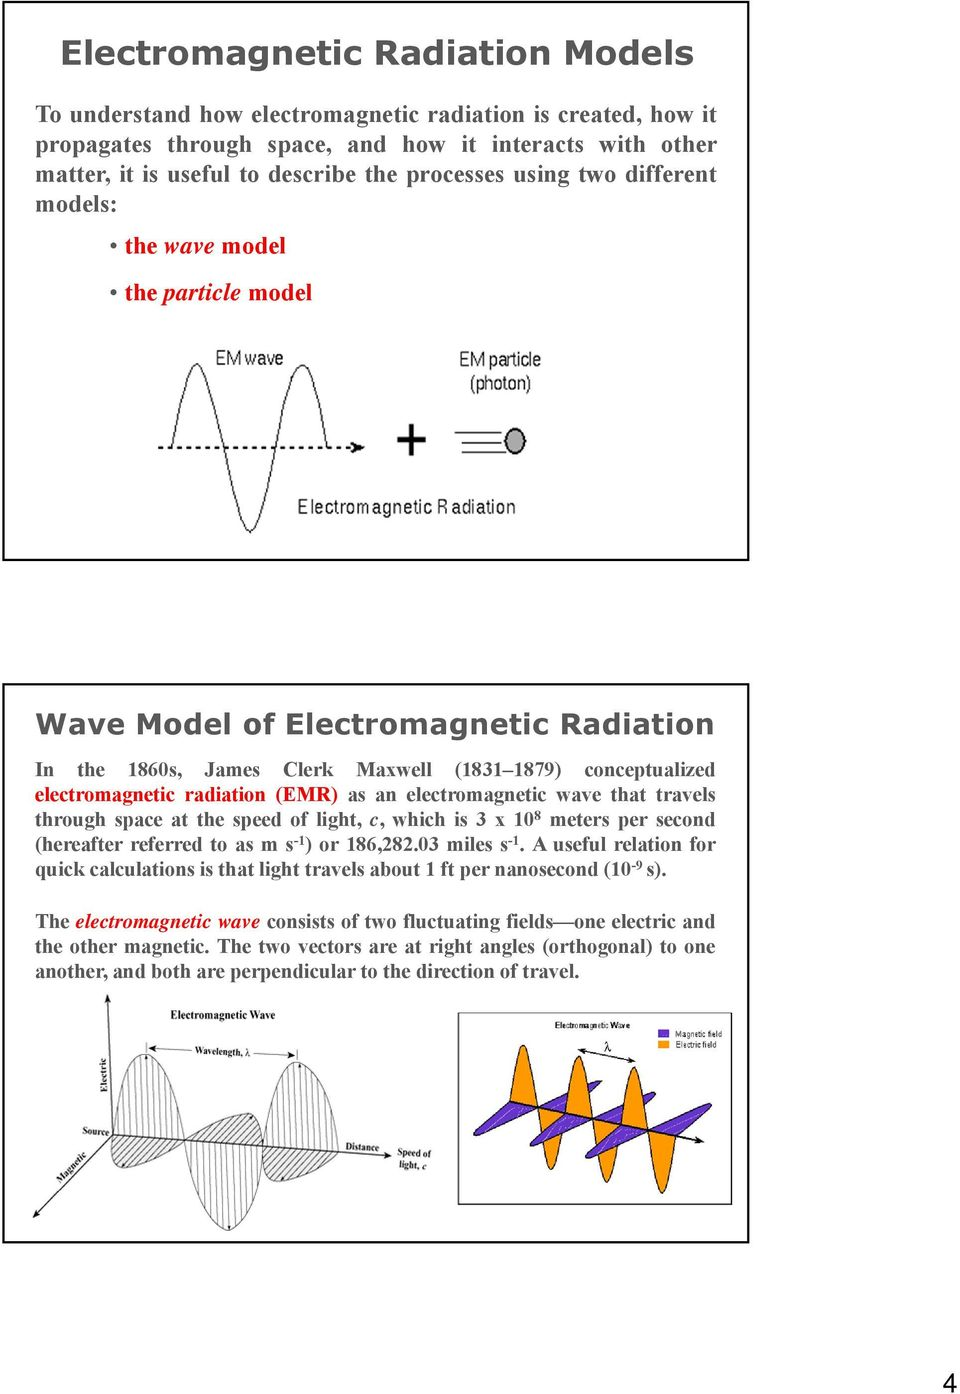 (EMR) as an electromagnetic wave that travels through space at the speed of light, c, whichis3x10 8 meters per second (hereafter referred to as m s -1 ) or 186,282.03 miles s -1.